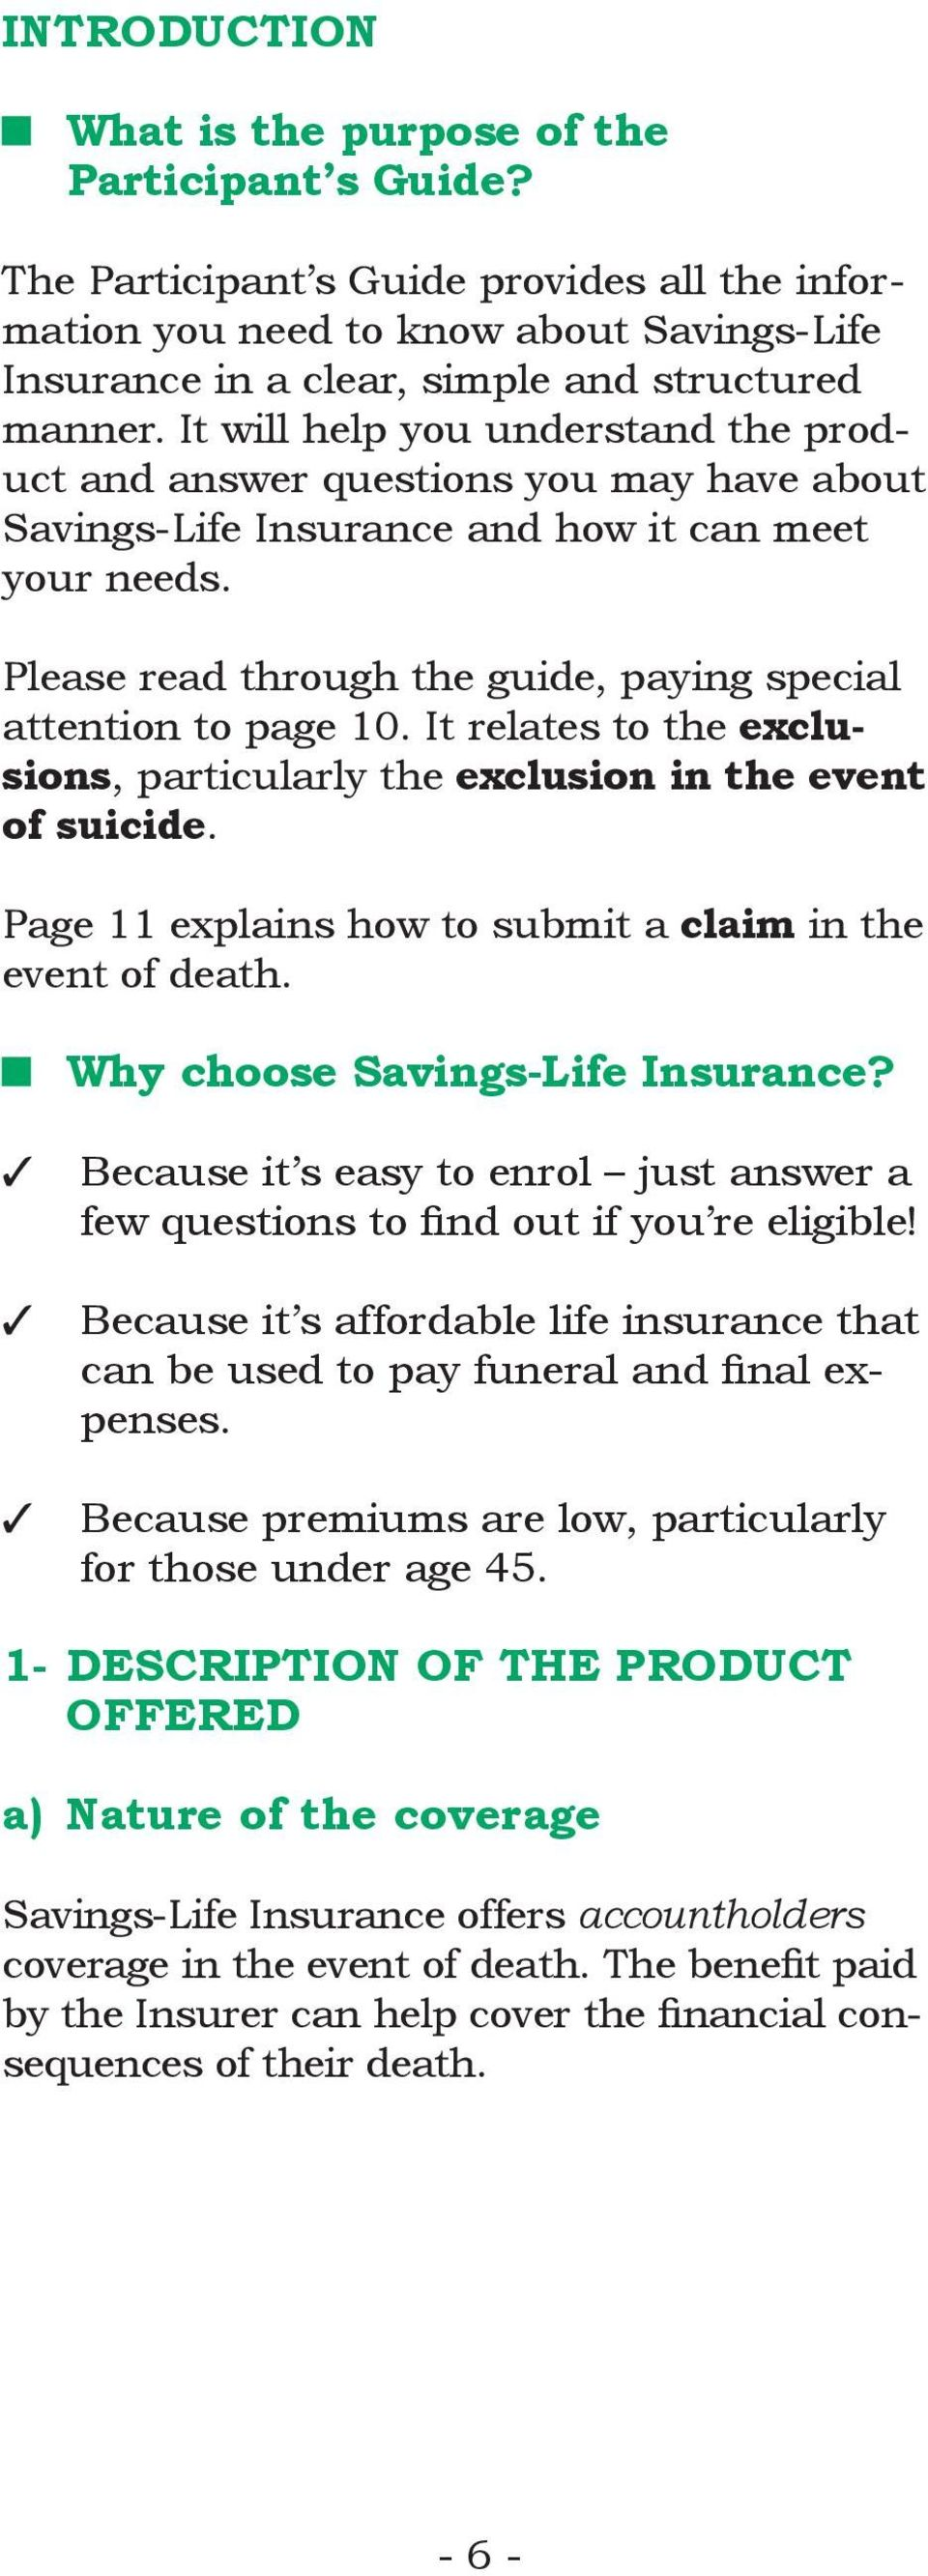 It will help you understand the product and answer questions you may have about Savings-Life Insurance and how it can meet your needs.